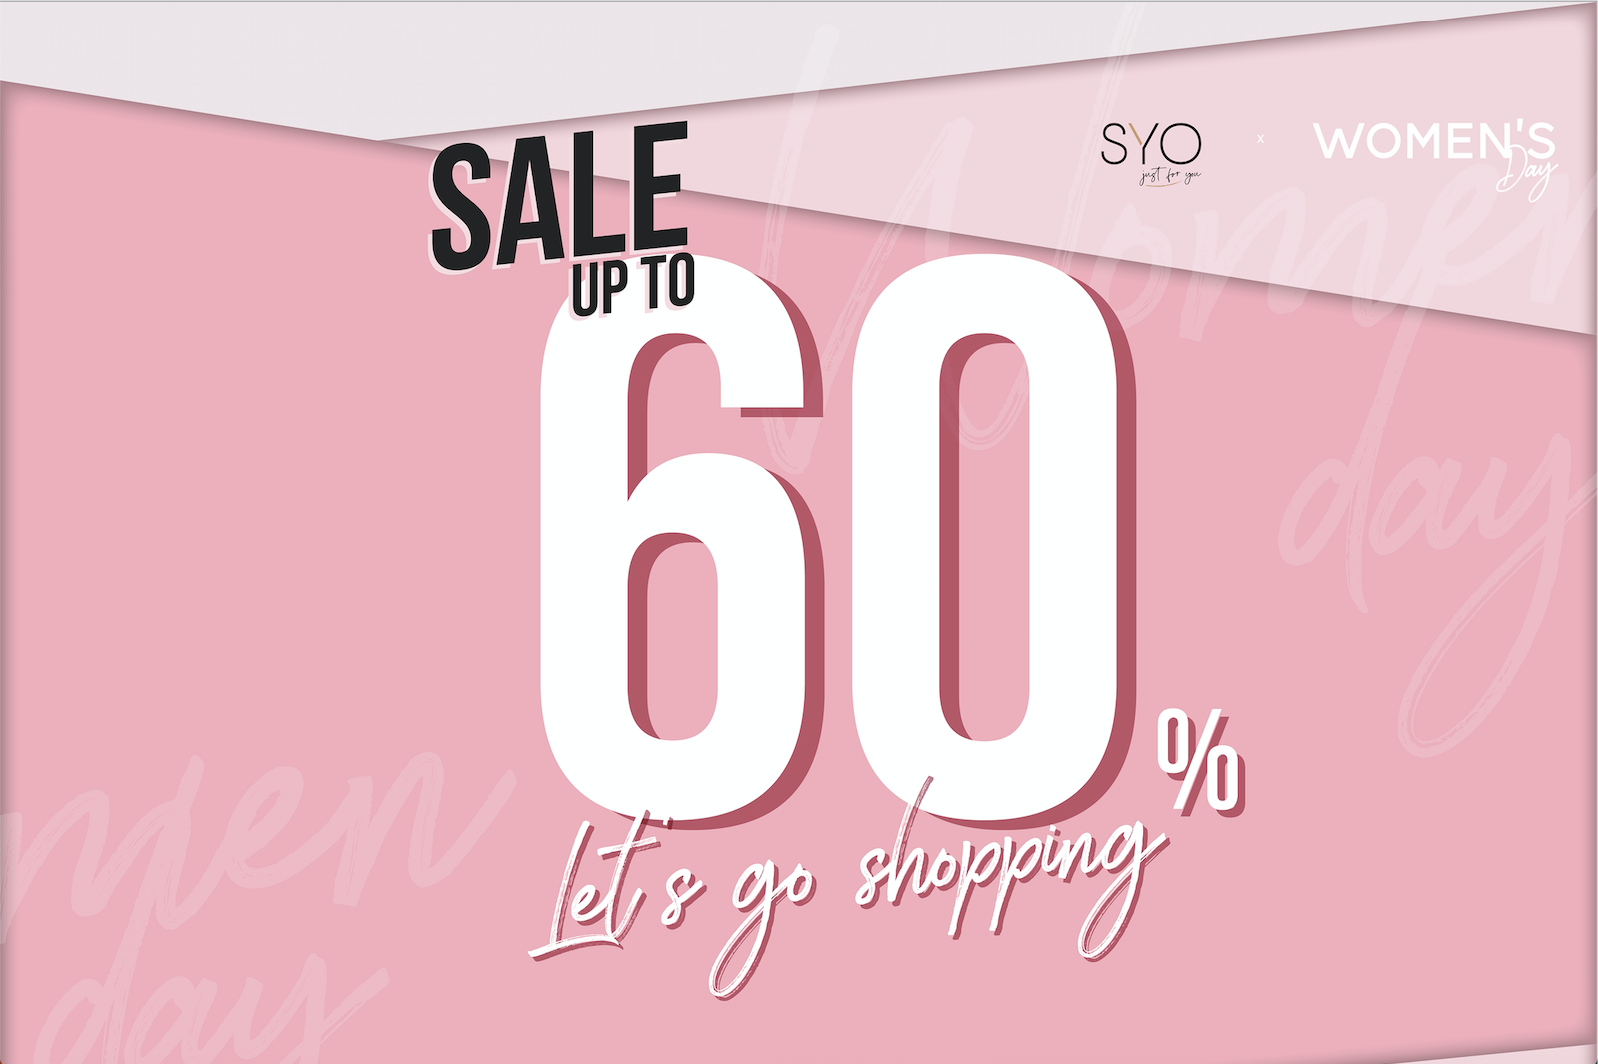 HAPPY WOMEN'S DAY - SALE UP TO 60%